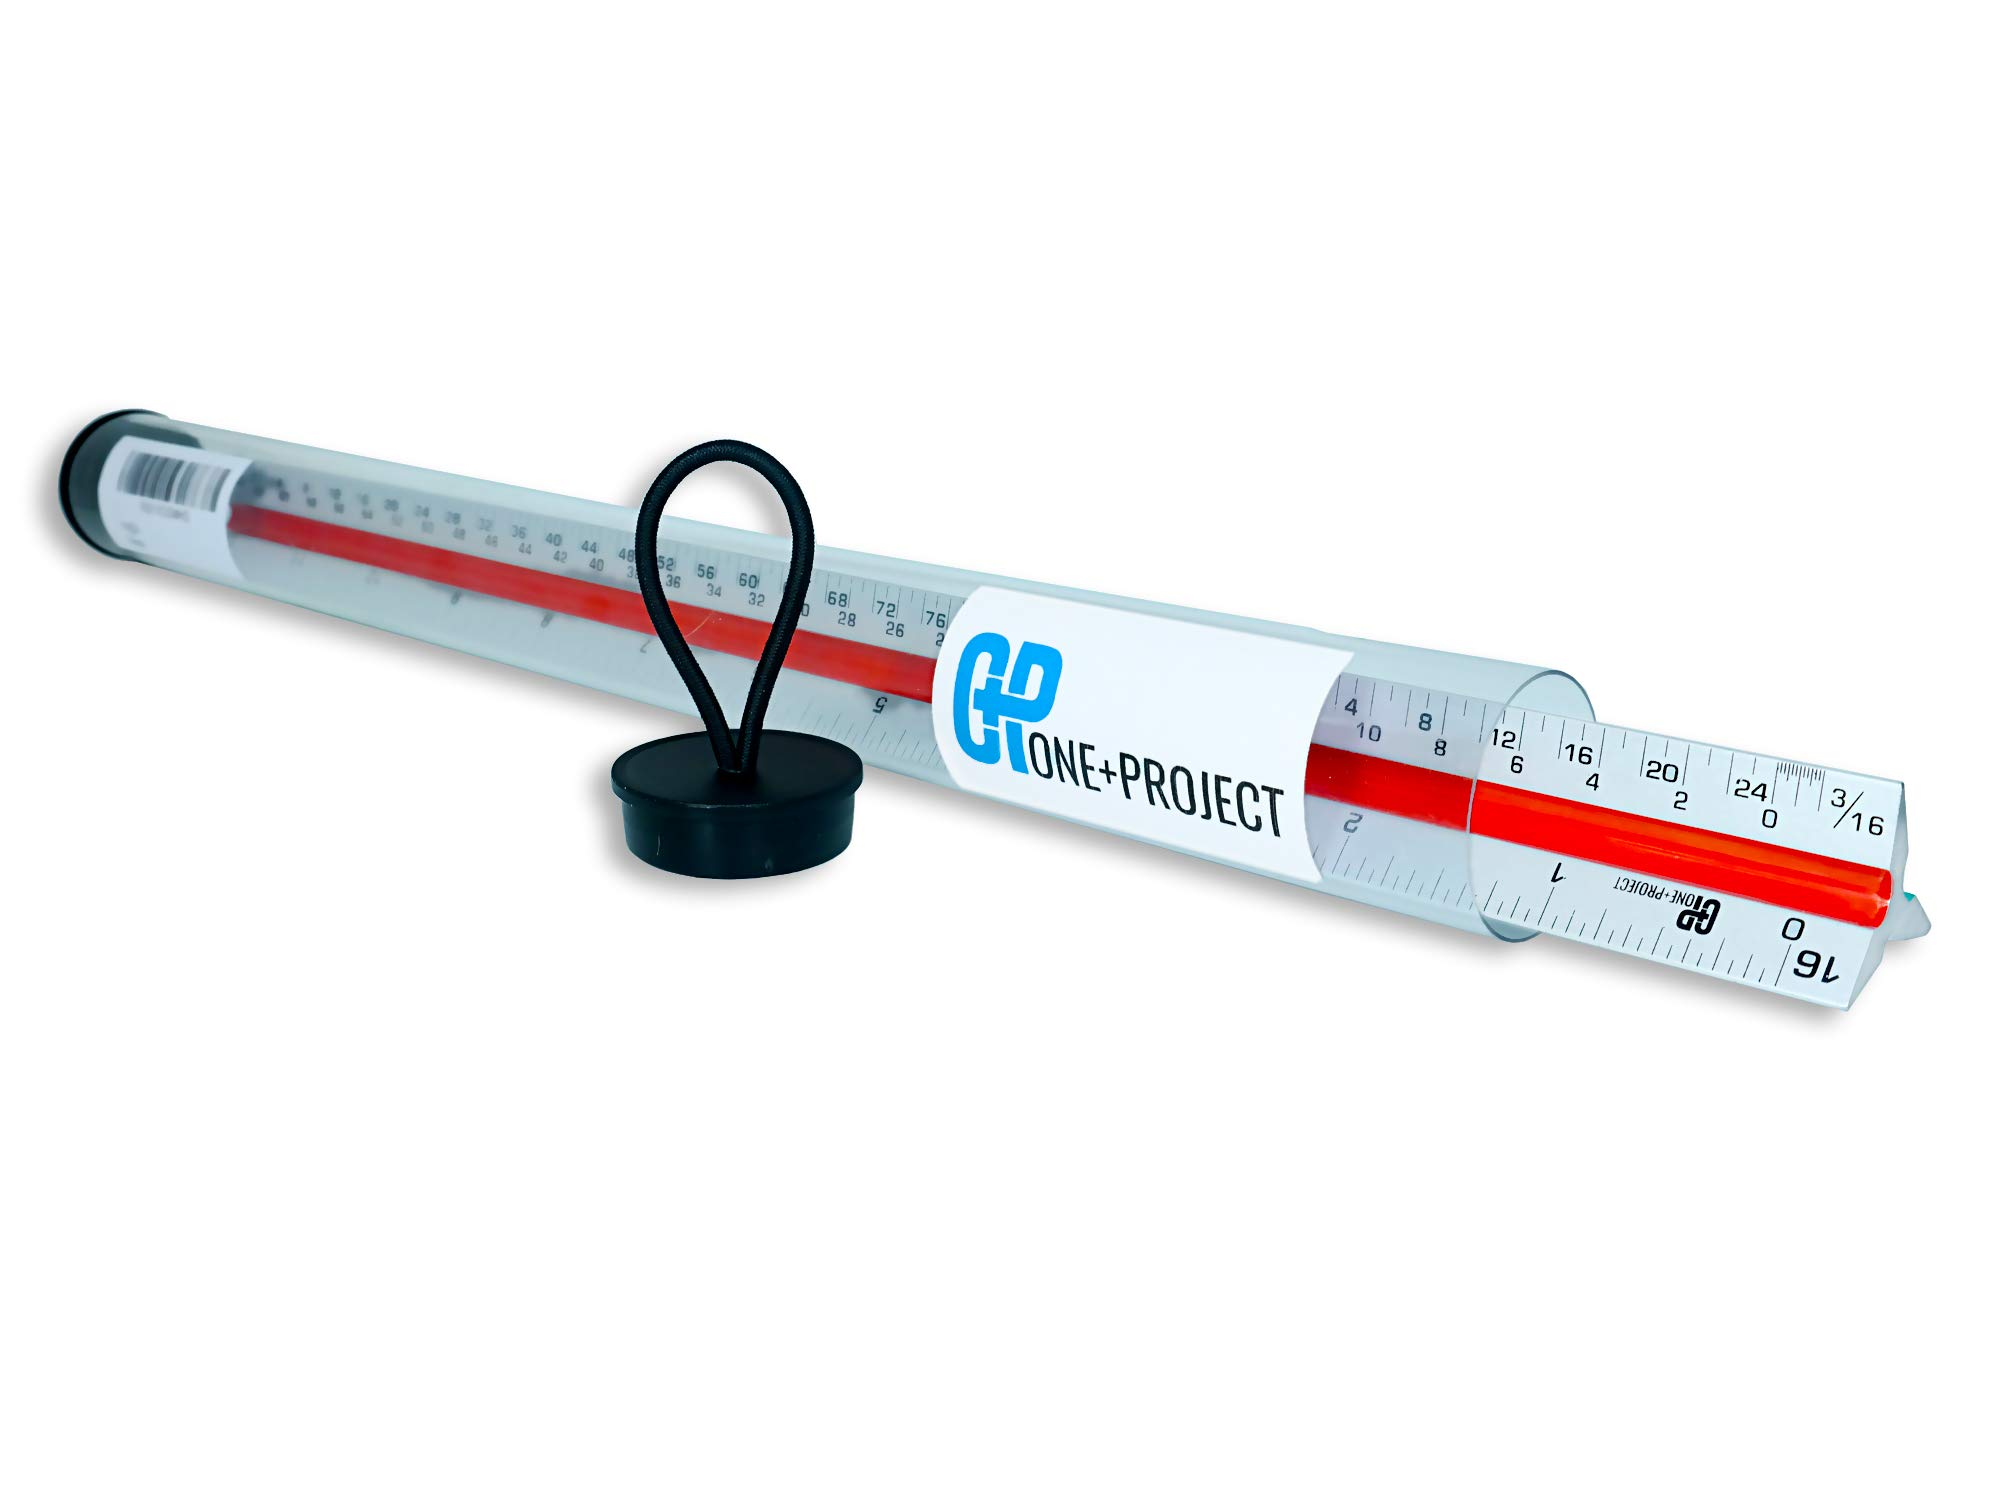 One+Project Triangular Architect Scale,12 – Inch Aluminum Ruler Color – Code Grooves with Protective Carrying Case - Imperial Measurements by One+Project (Image #7)